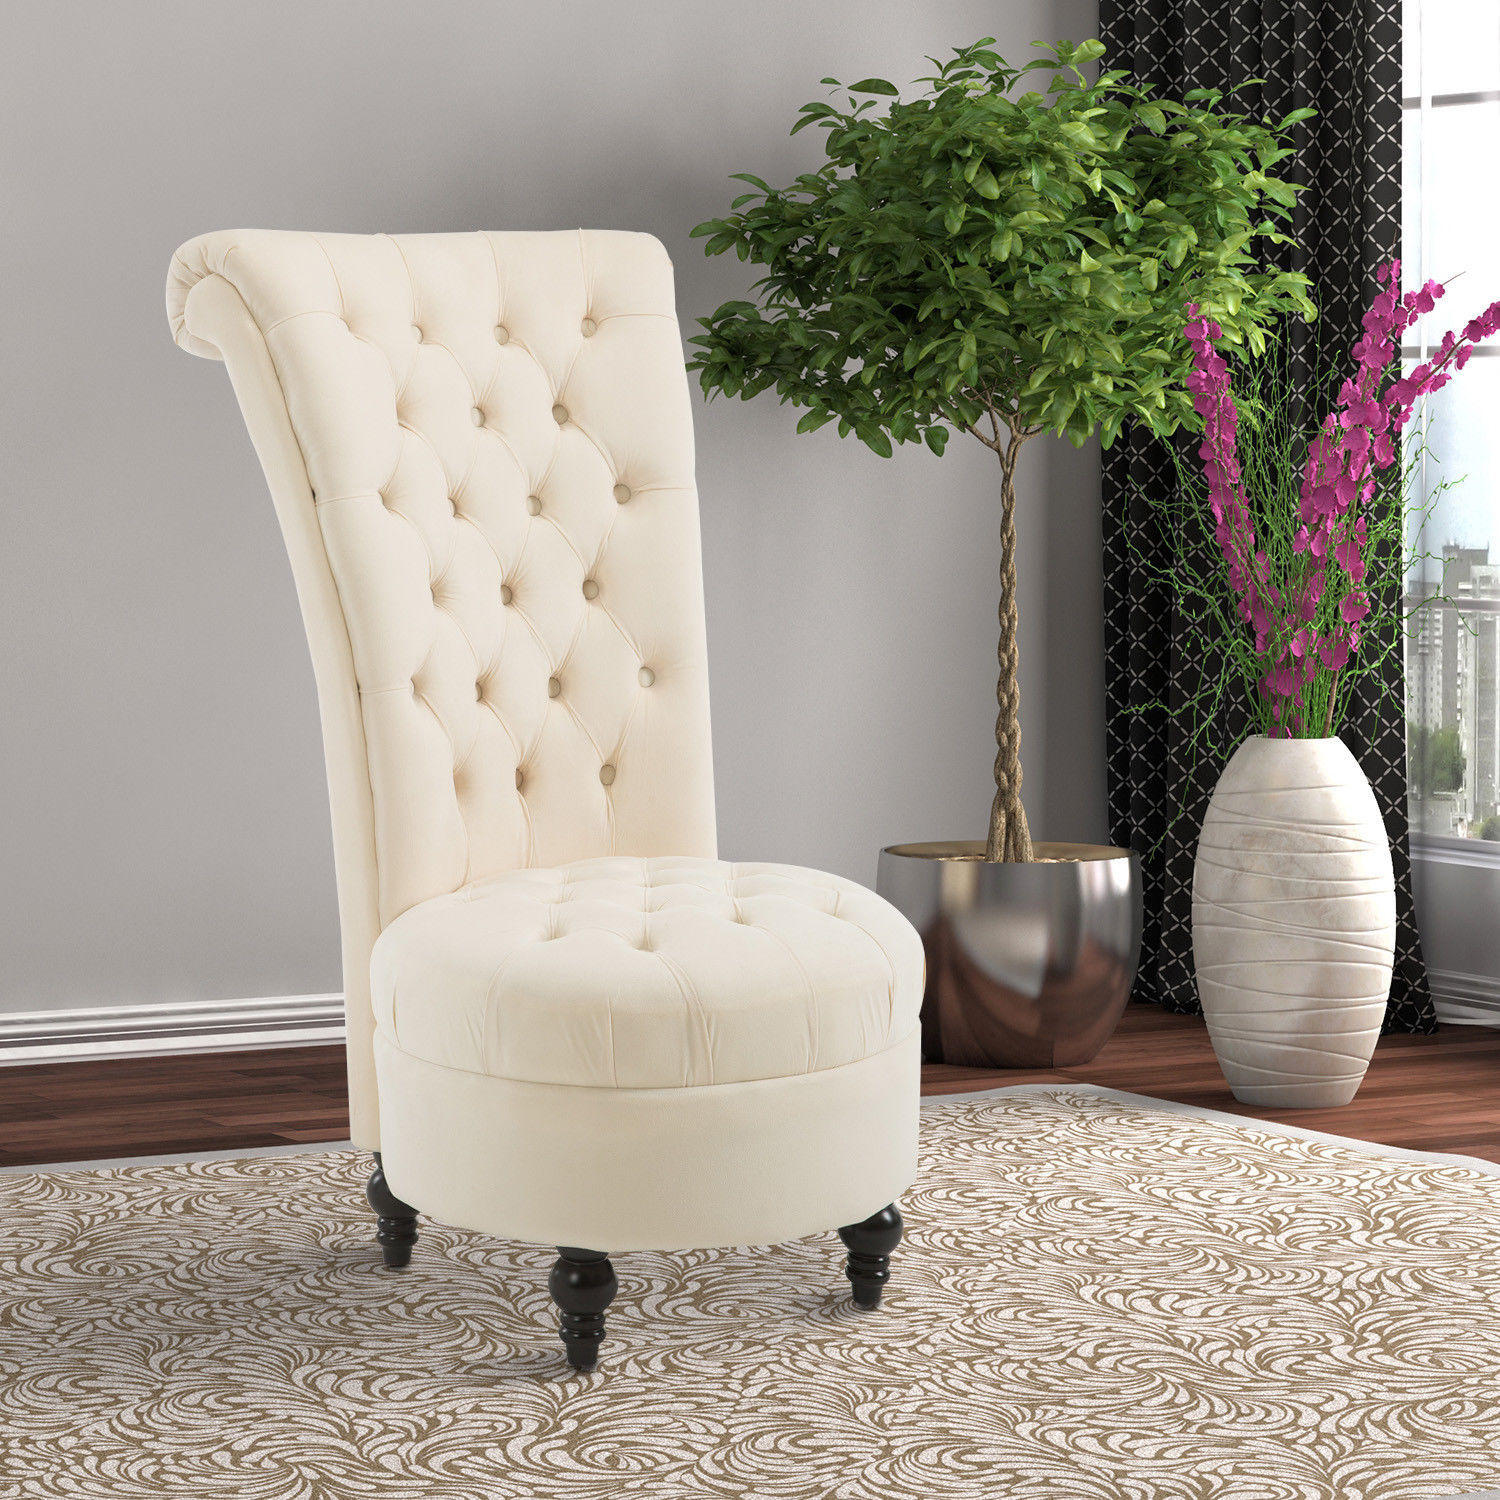 Tufted High Back Chair Details About Homcom 45